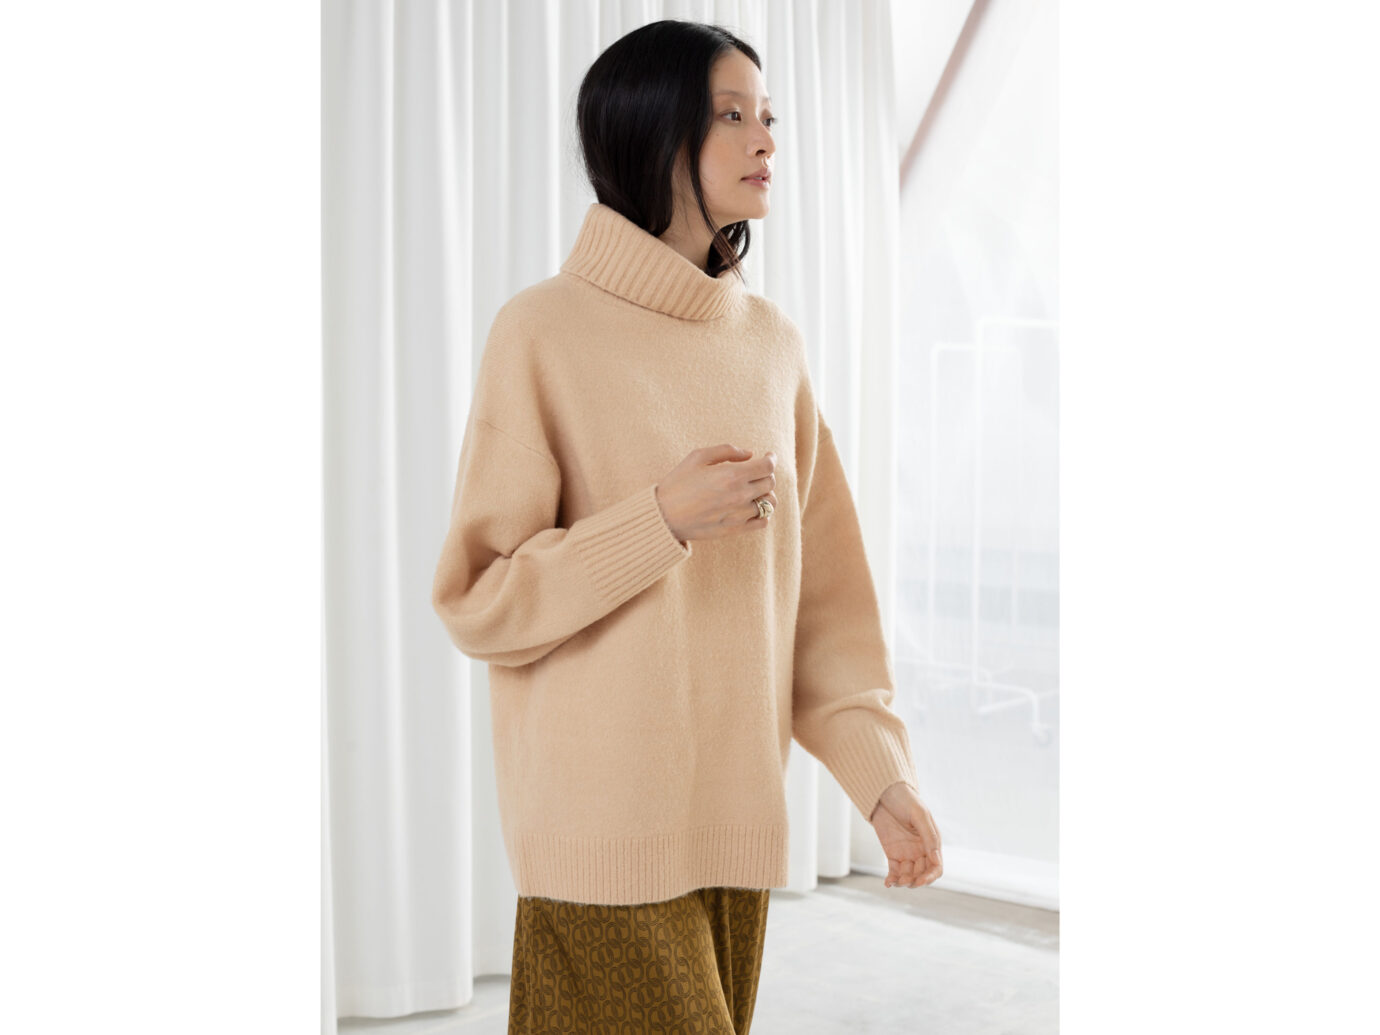 & Other Stories Slouchy Oversized Turtleneck Sweater